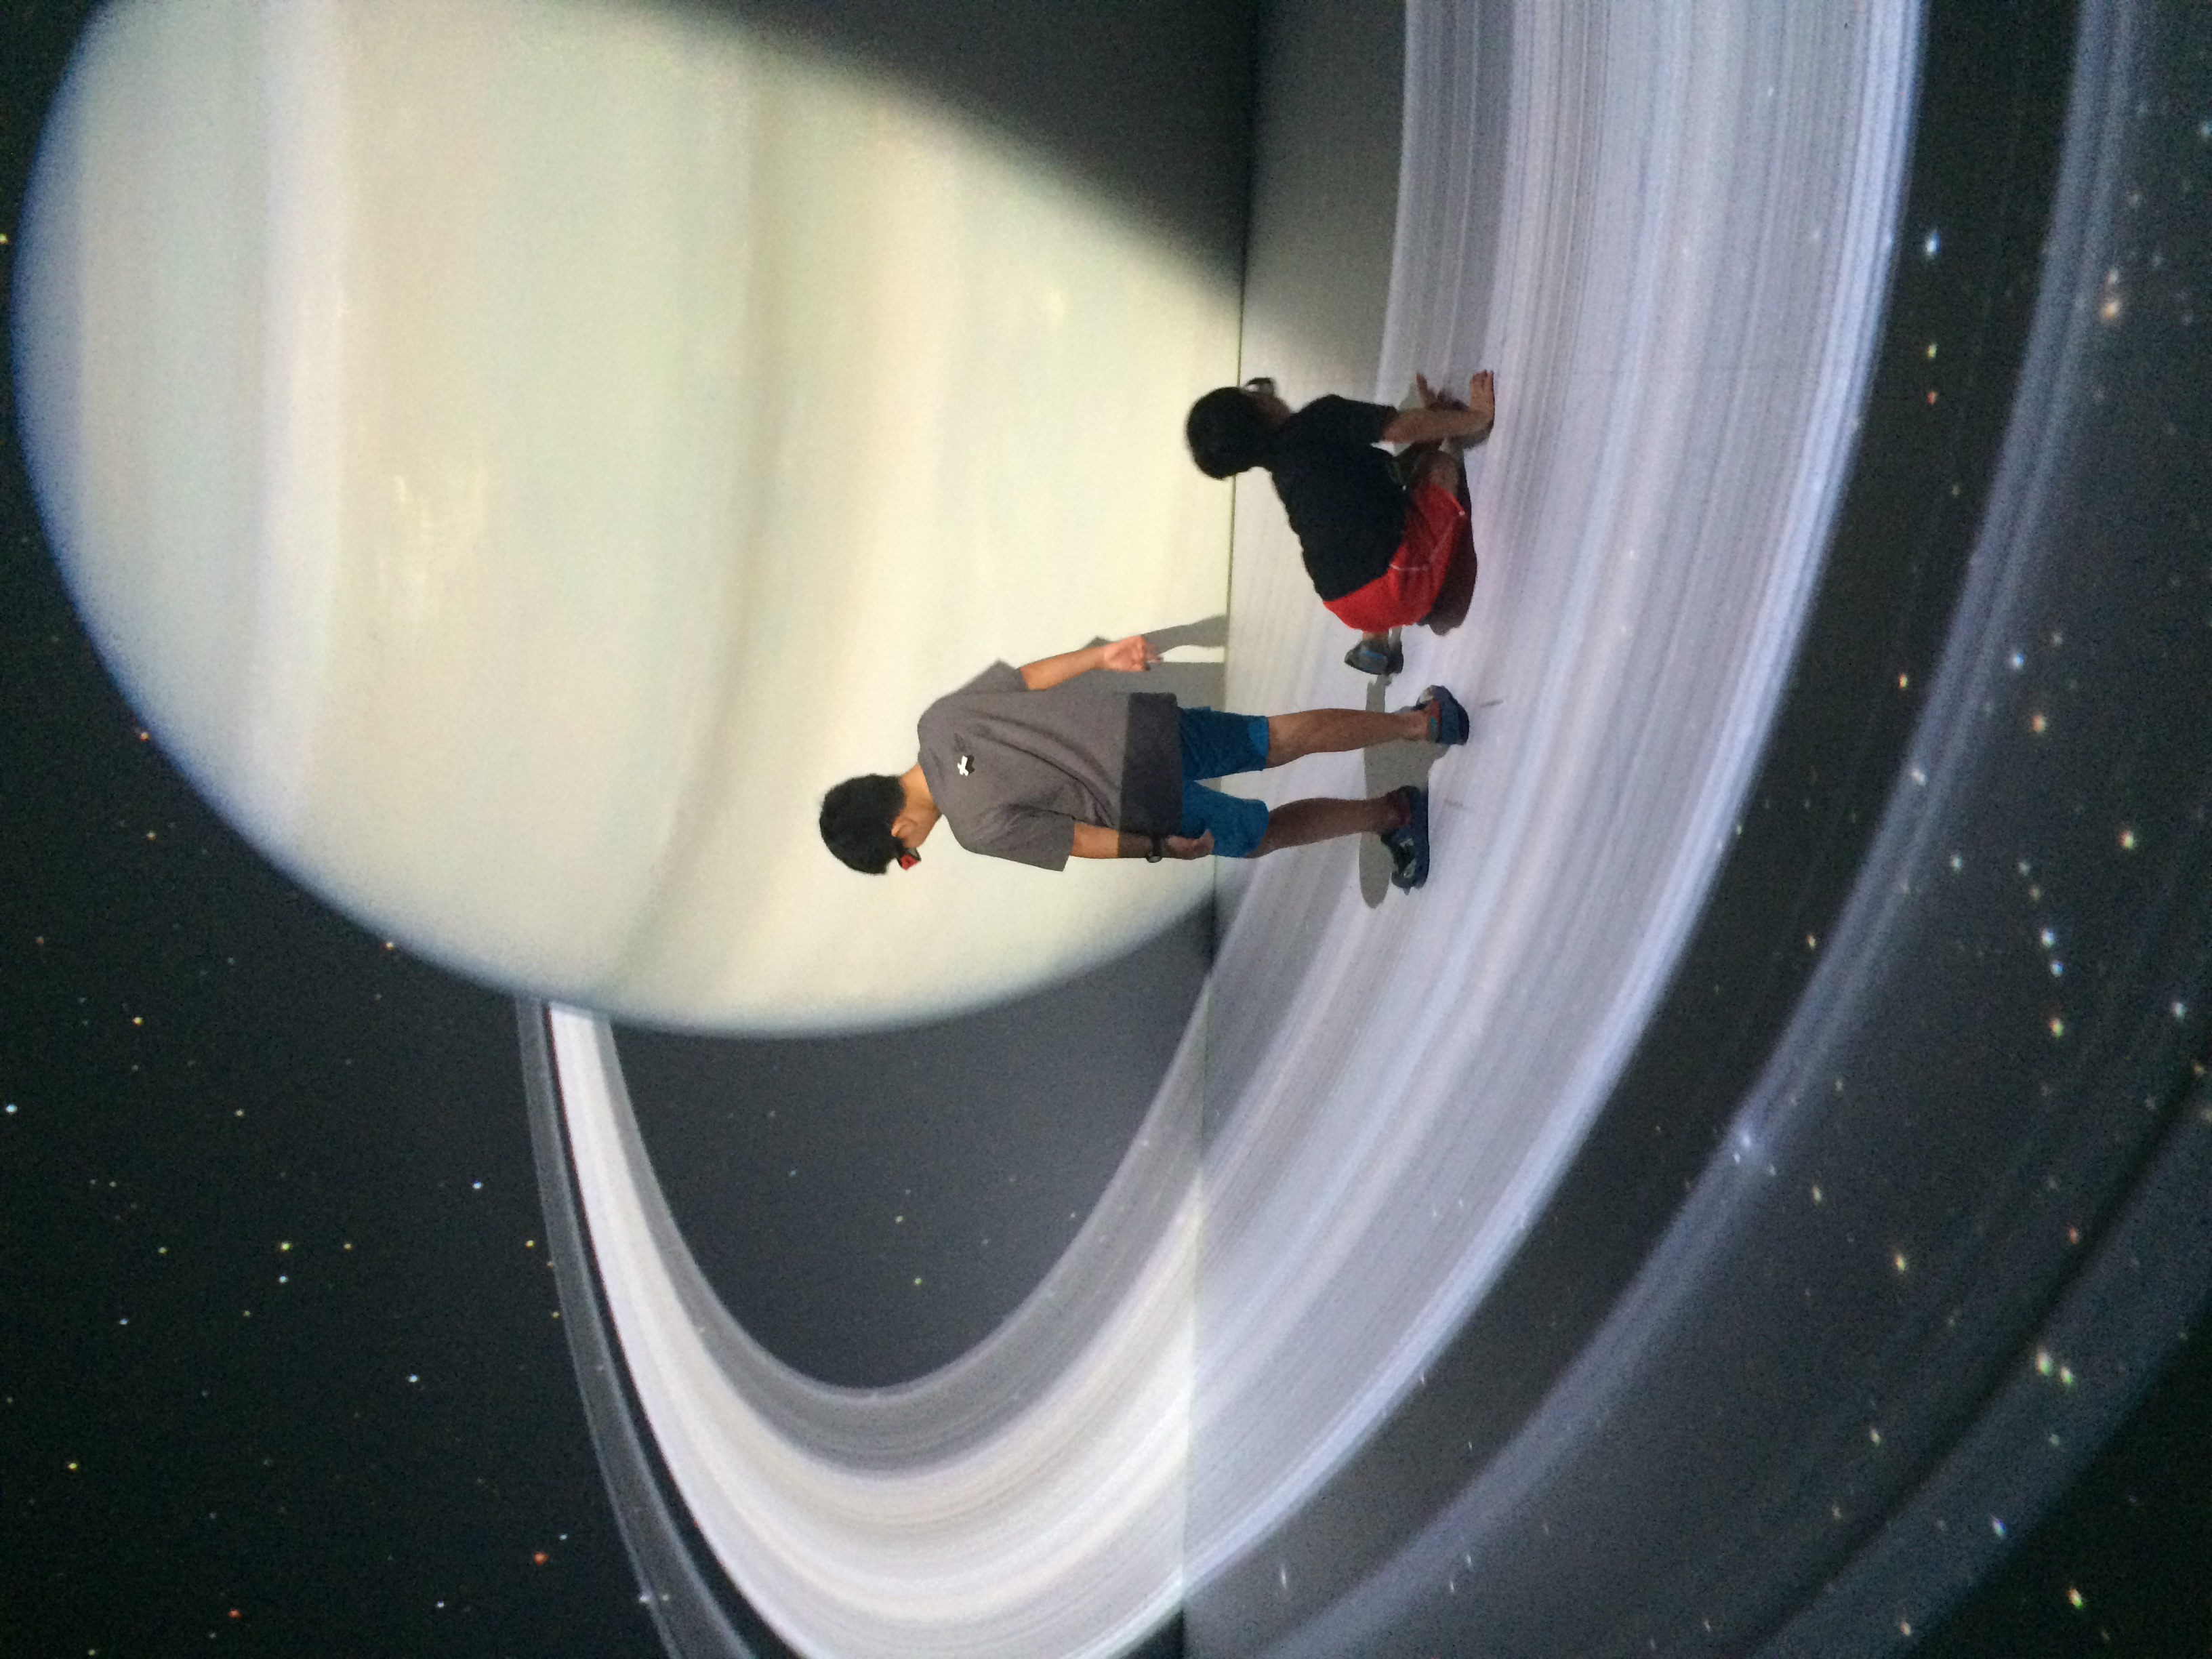 Deep Space - The 3D Show where you are invited to roam around themulti-dimensional space.